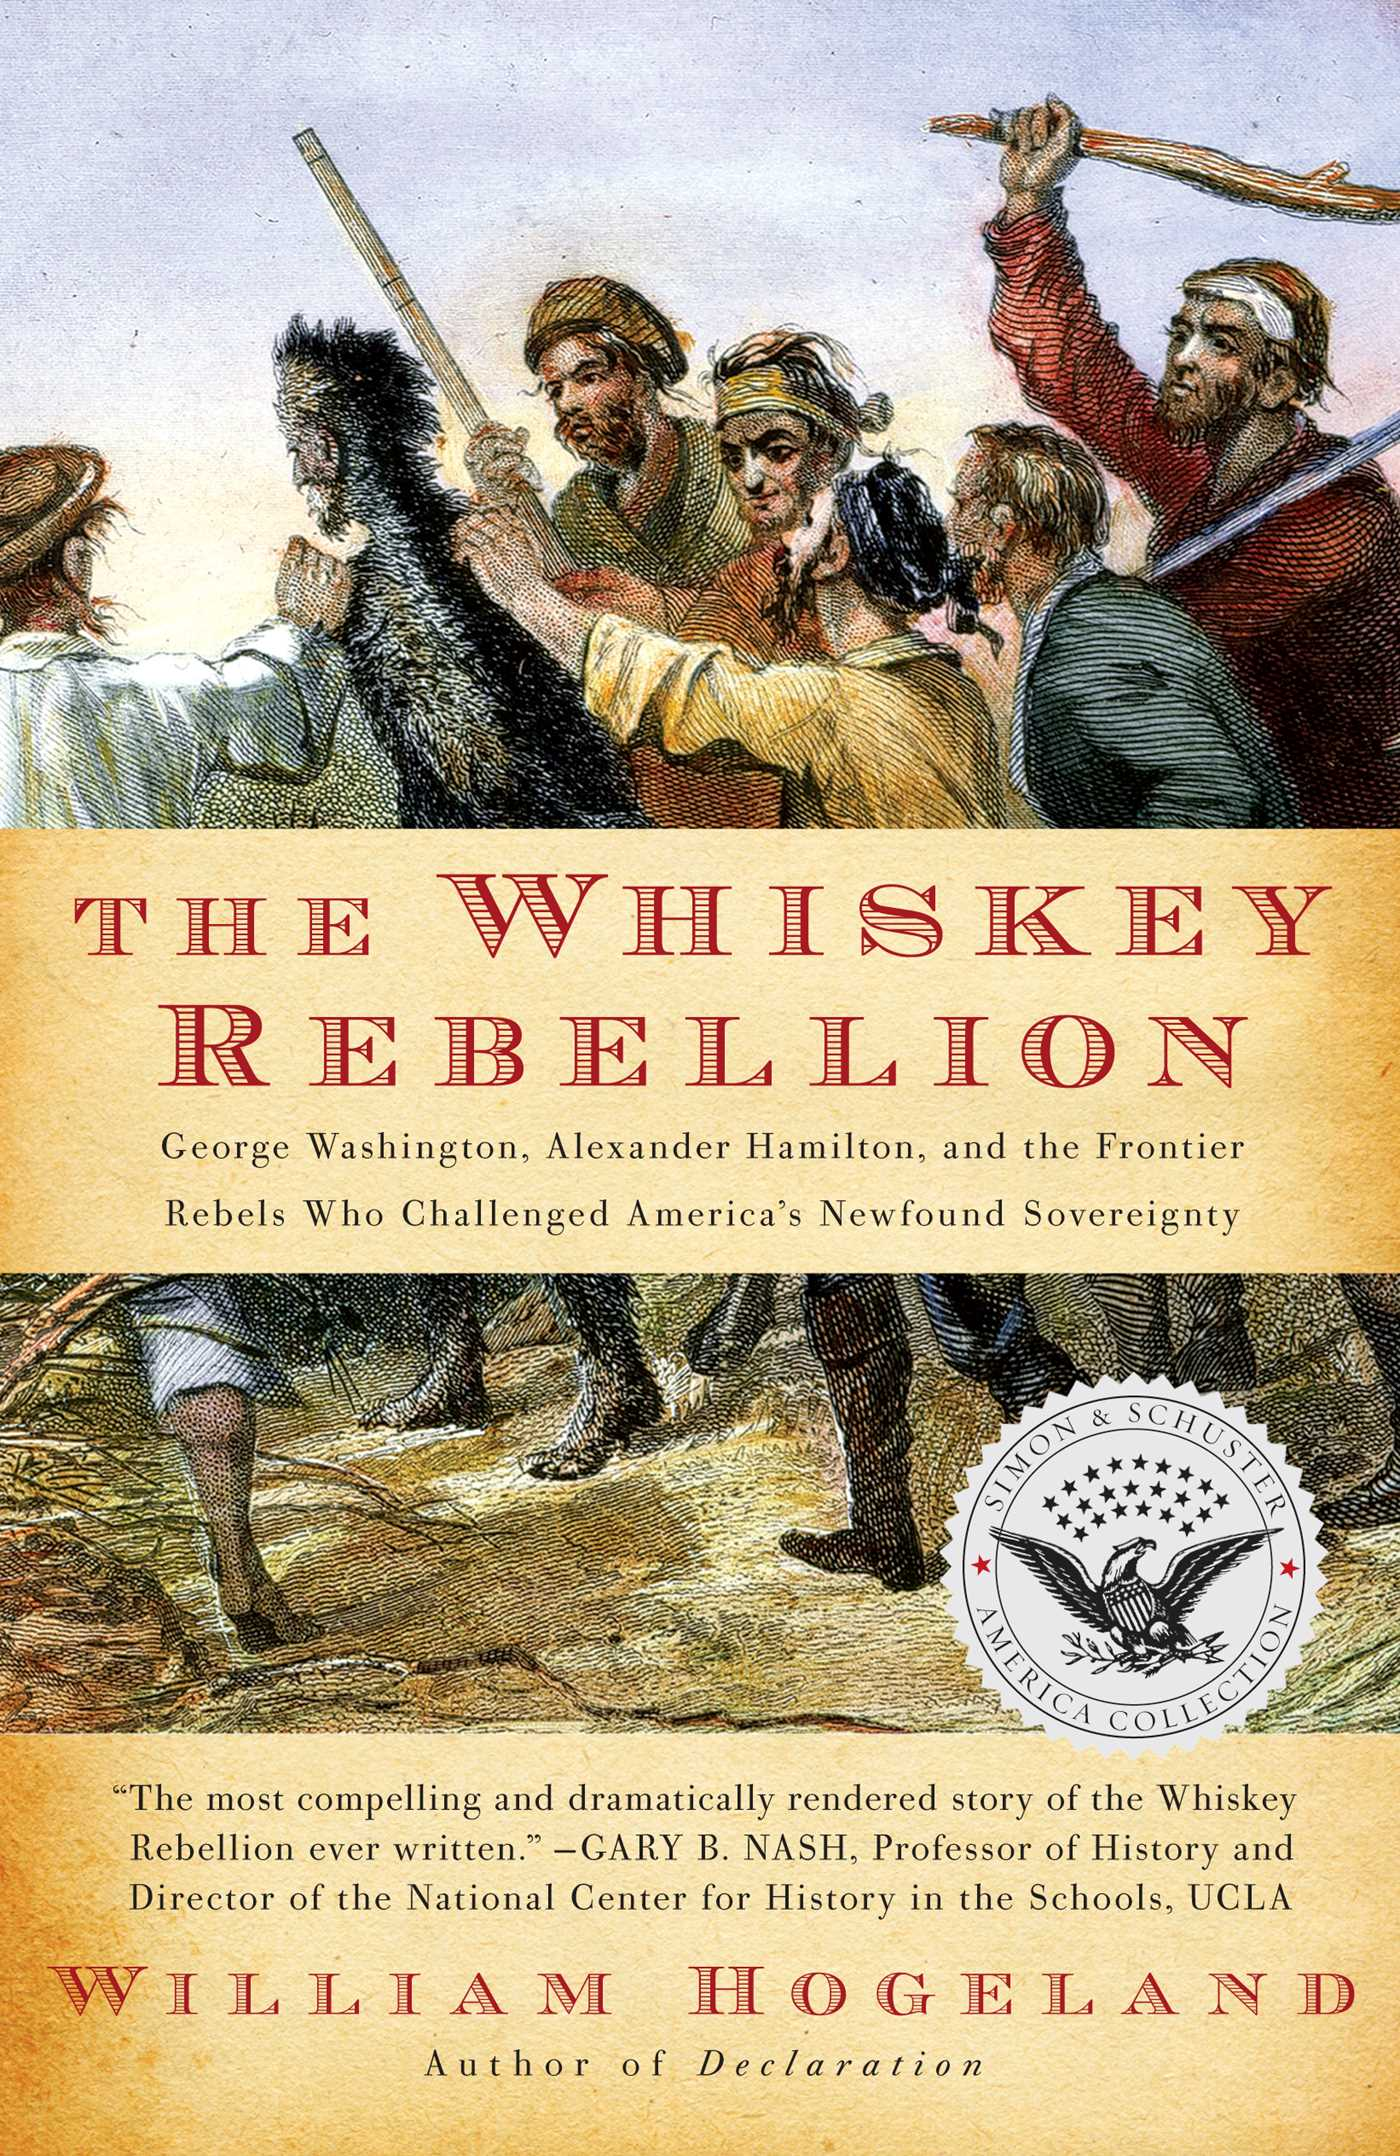 The whiskey rebellion 9781439193297 hr